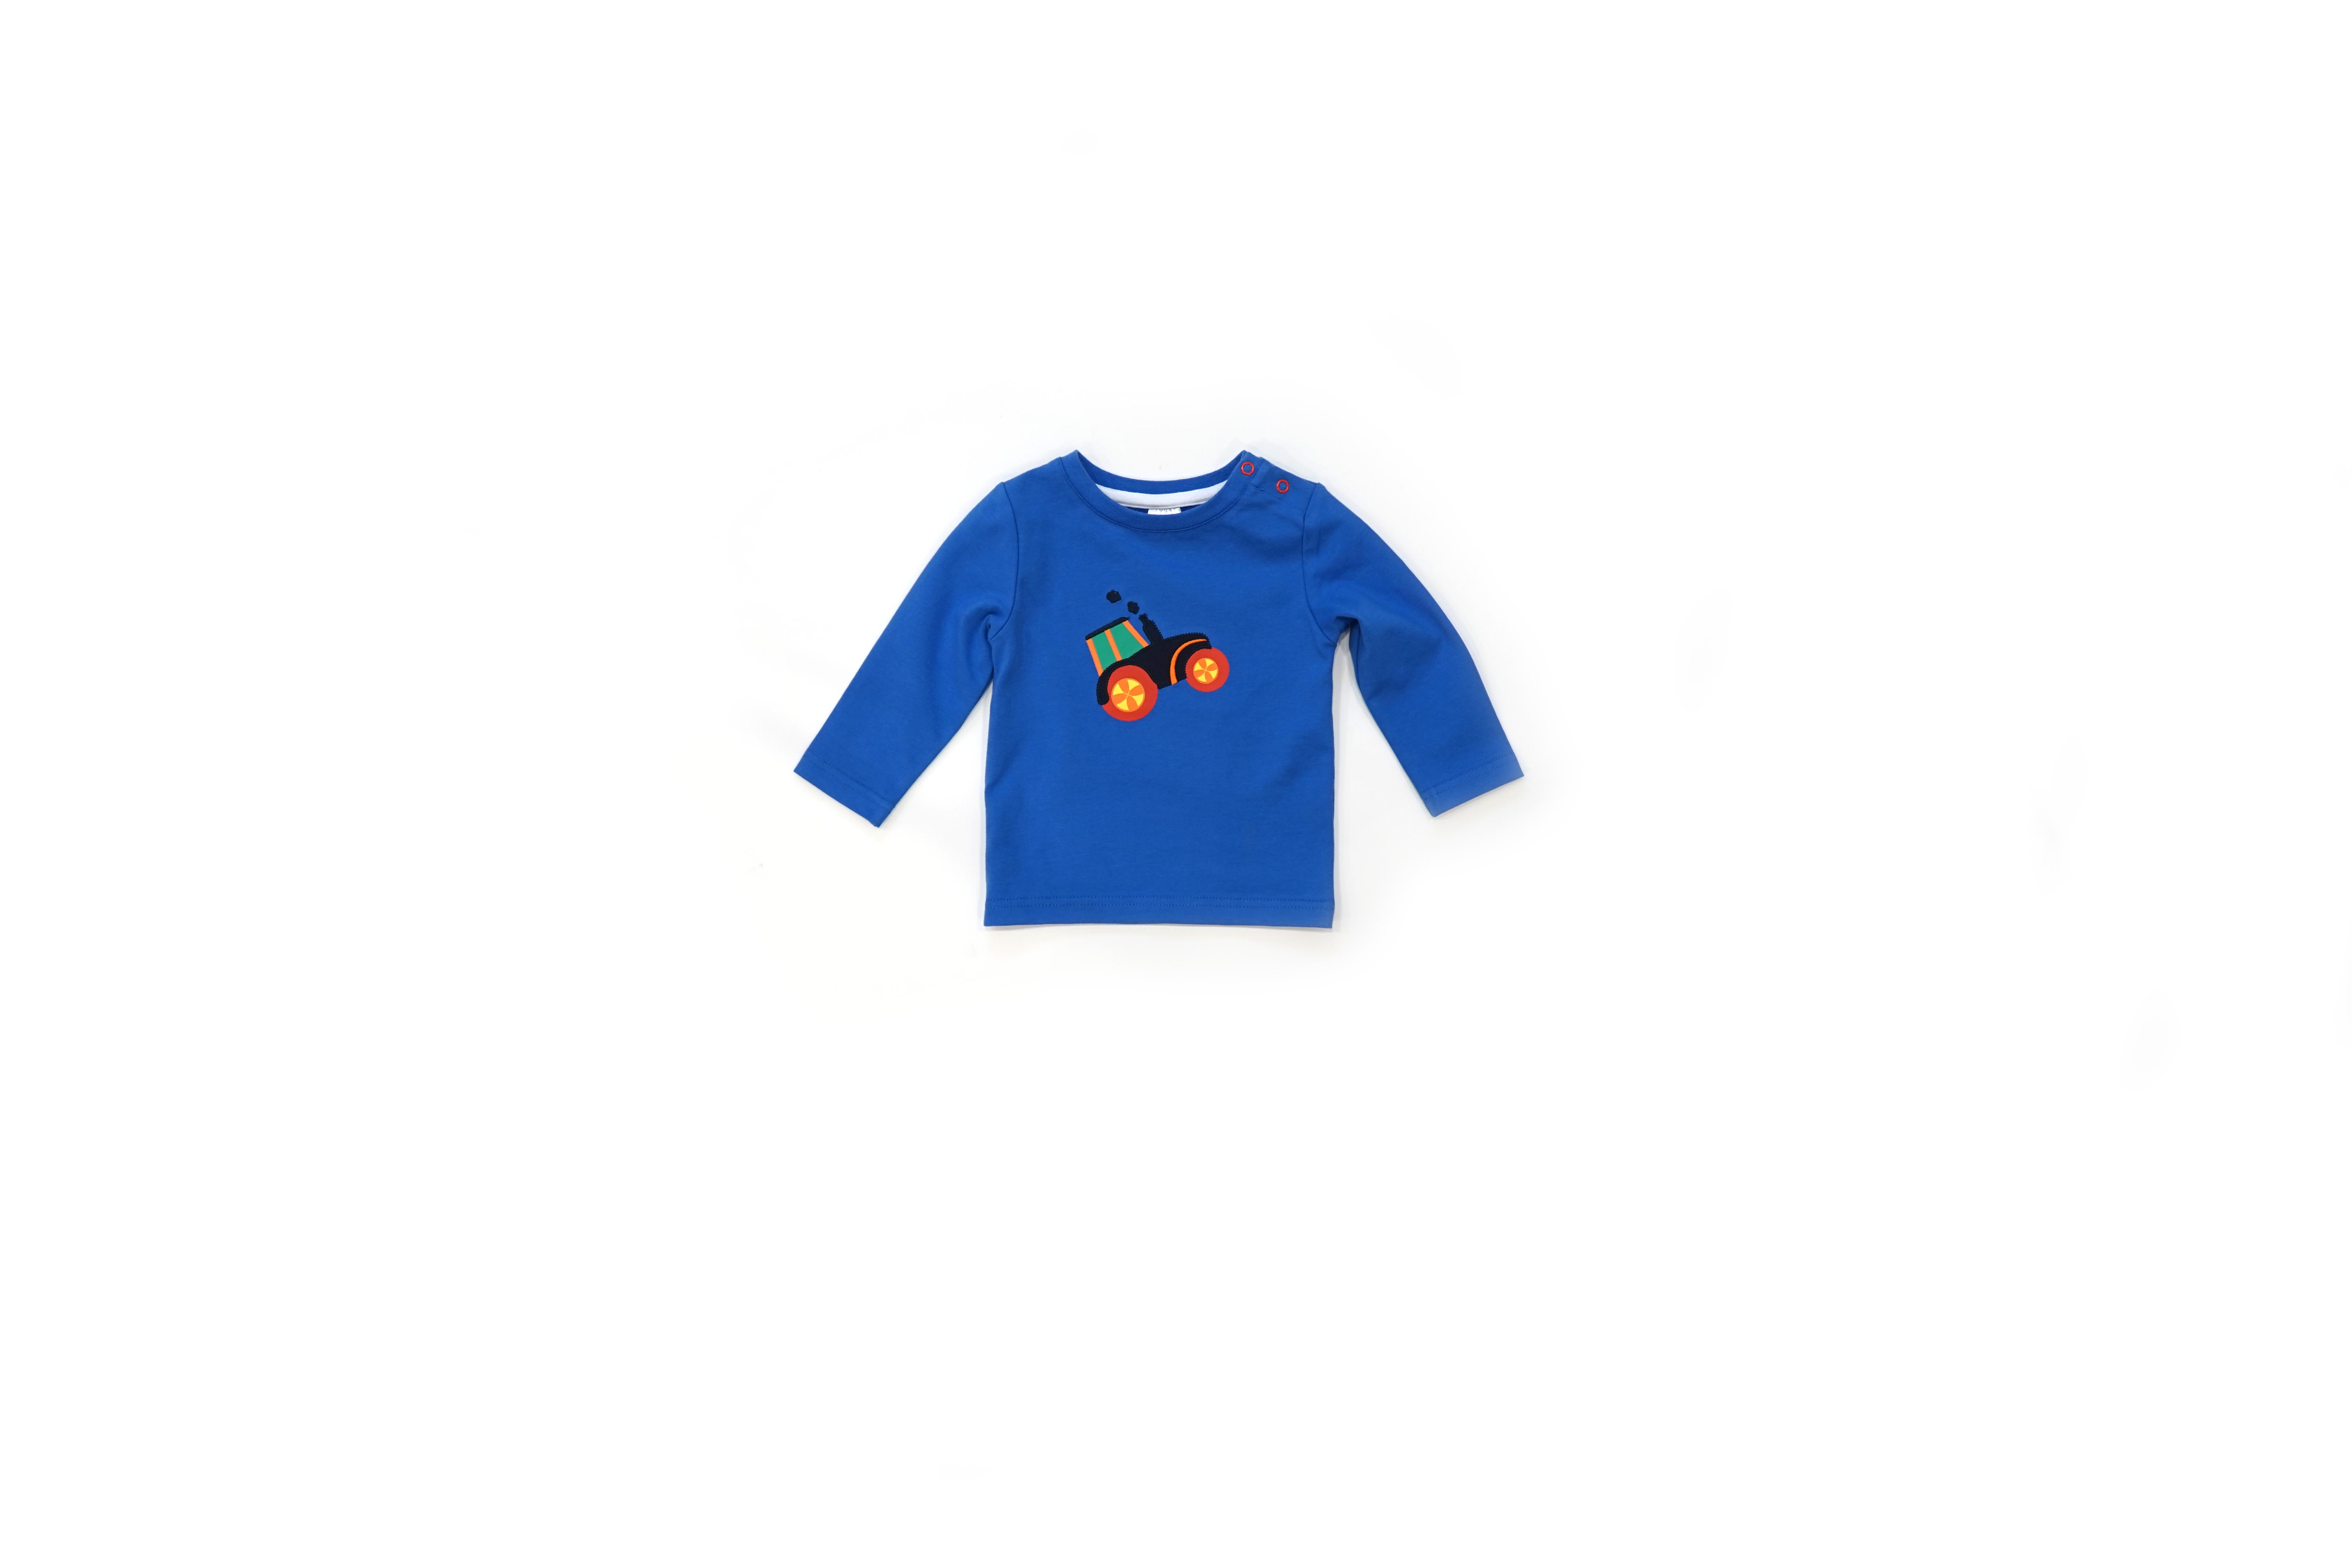 Farmyard tractor top for toddlers